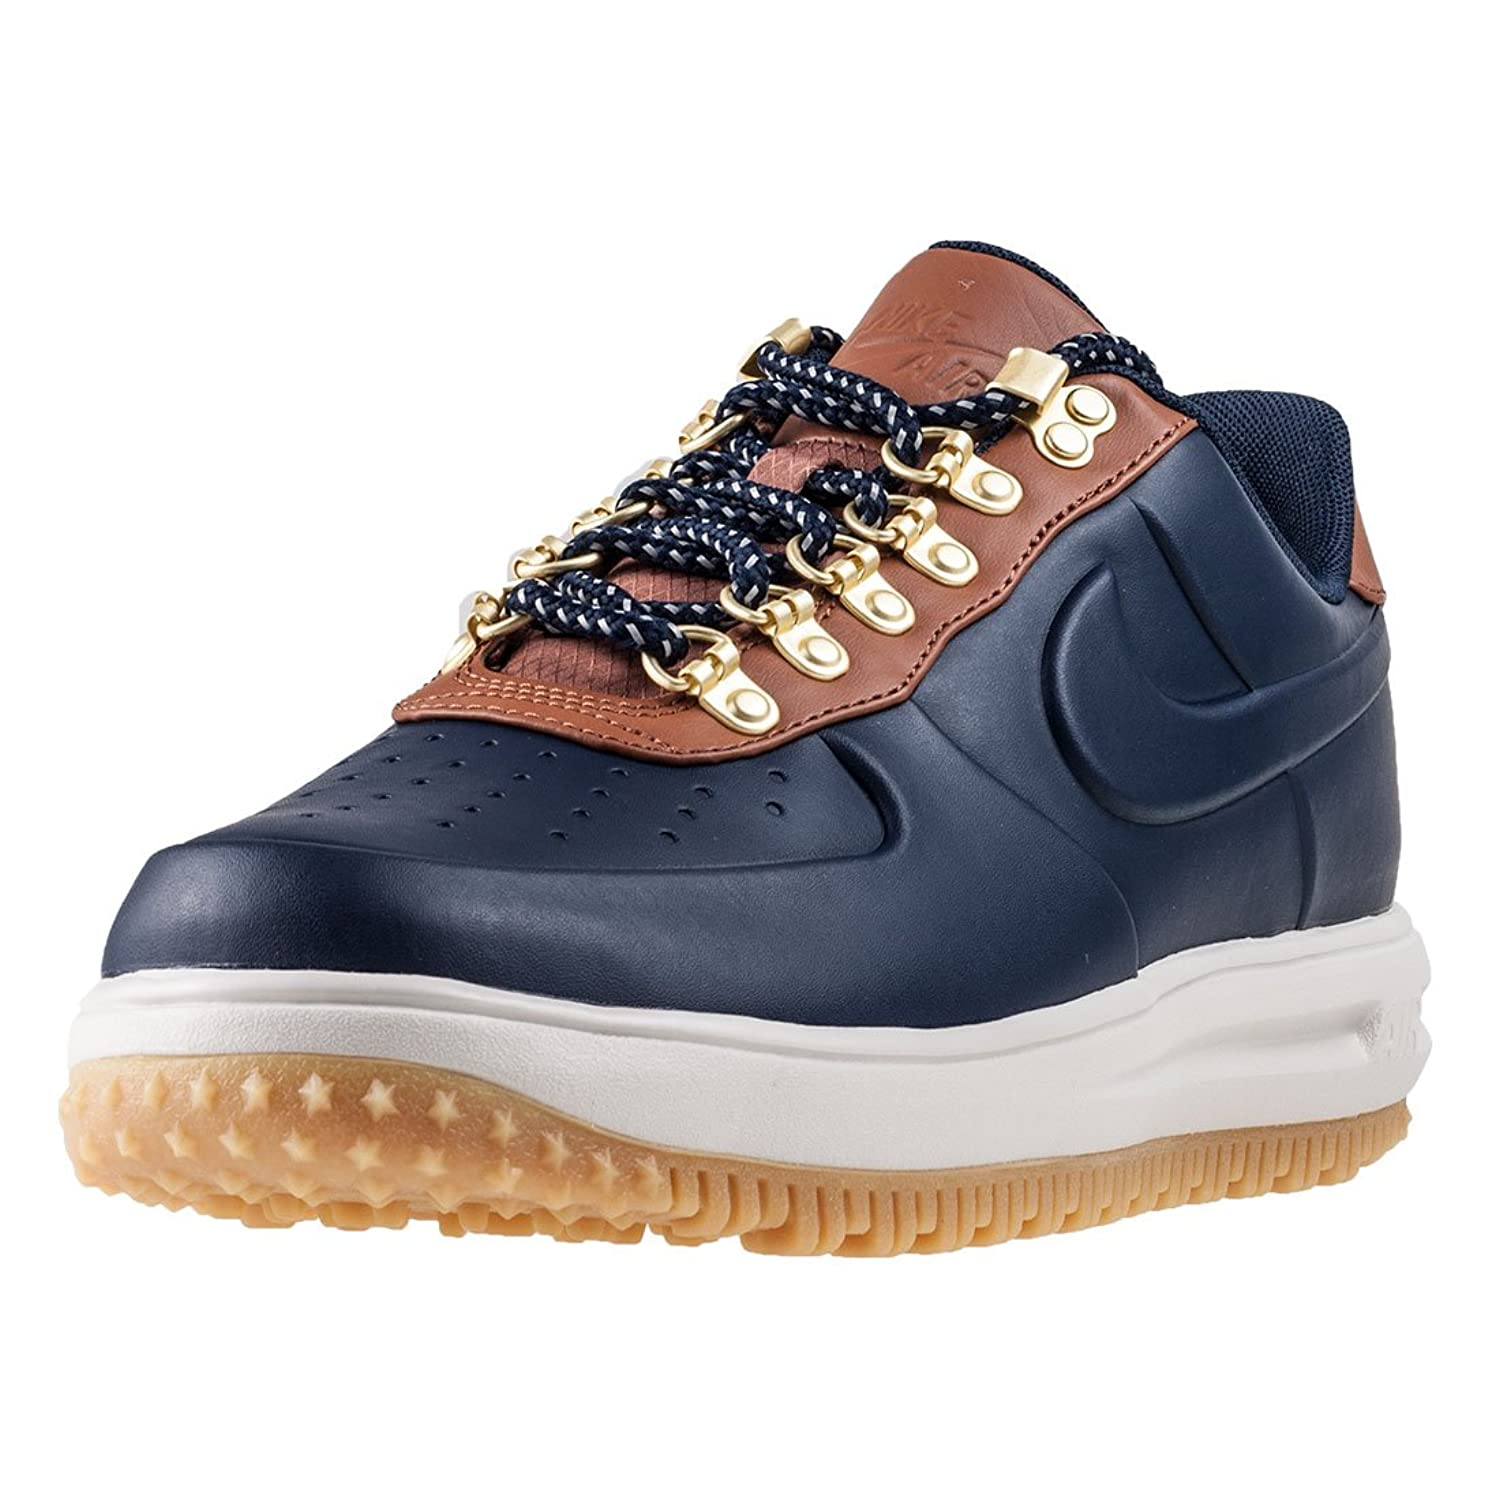 NIKE Lunar Force 1 Duckboot Low Men Casual Shoes